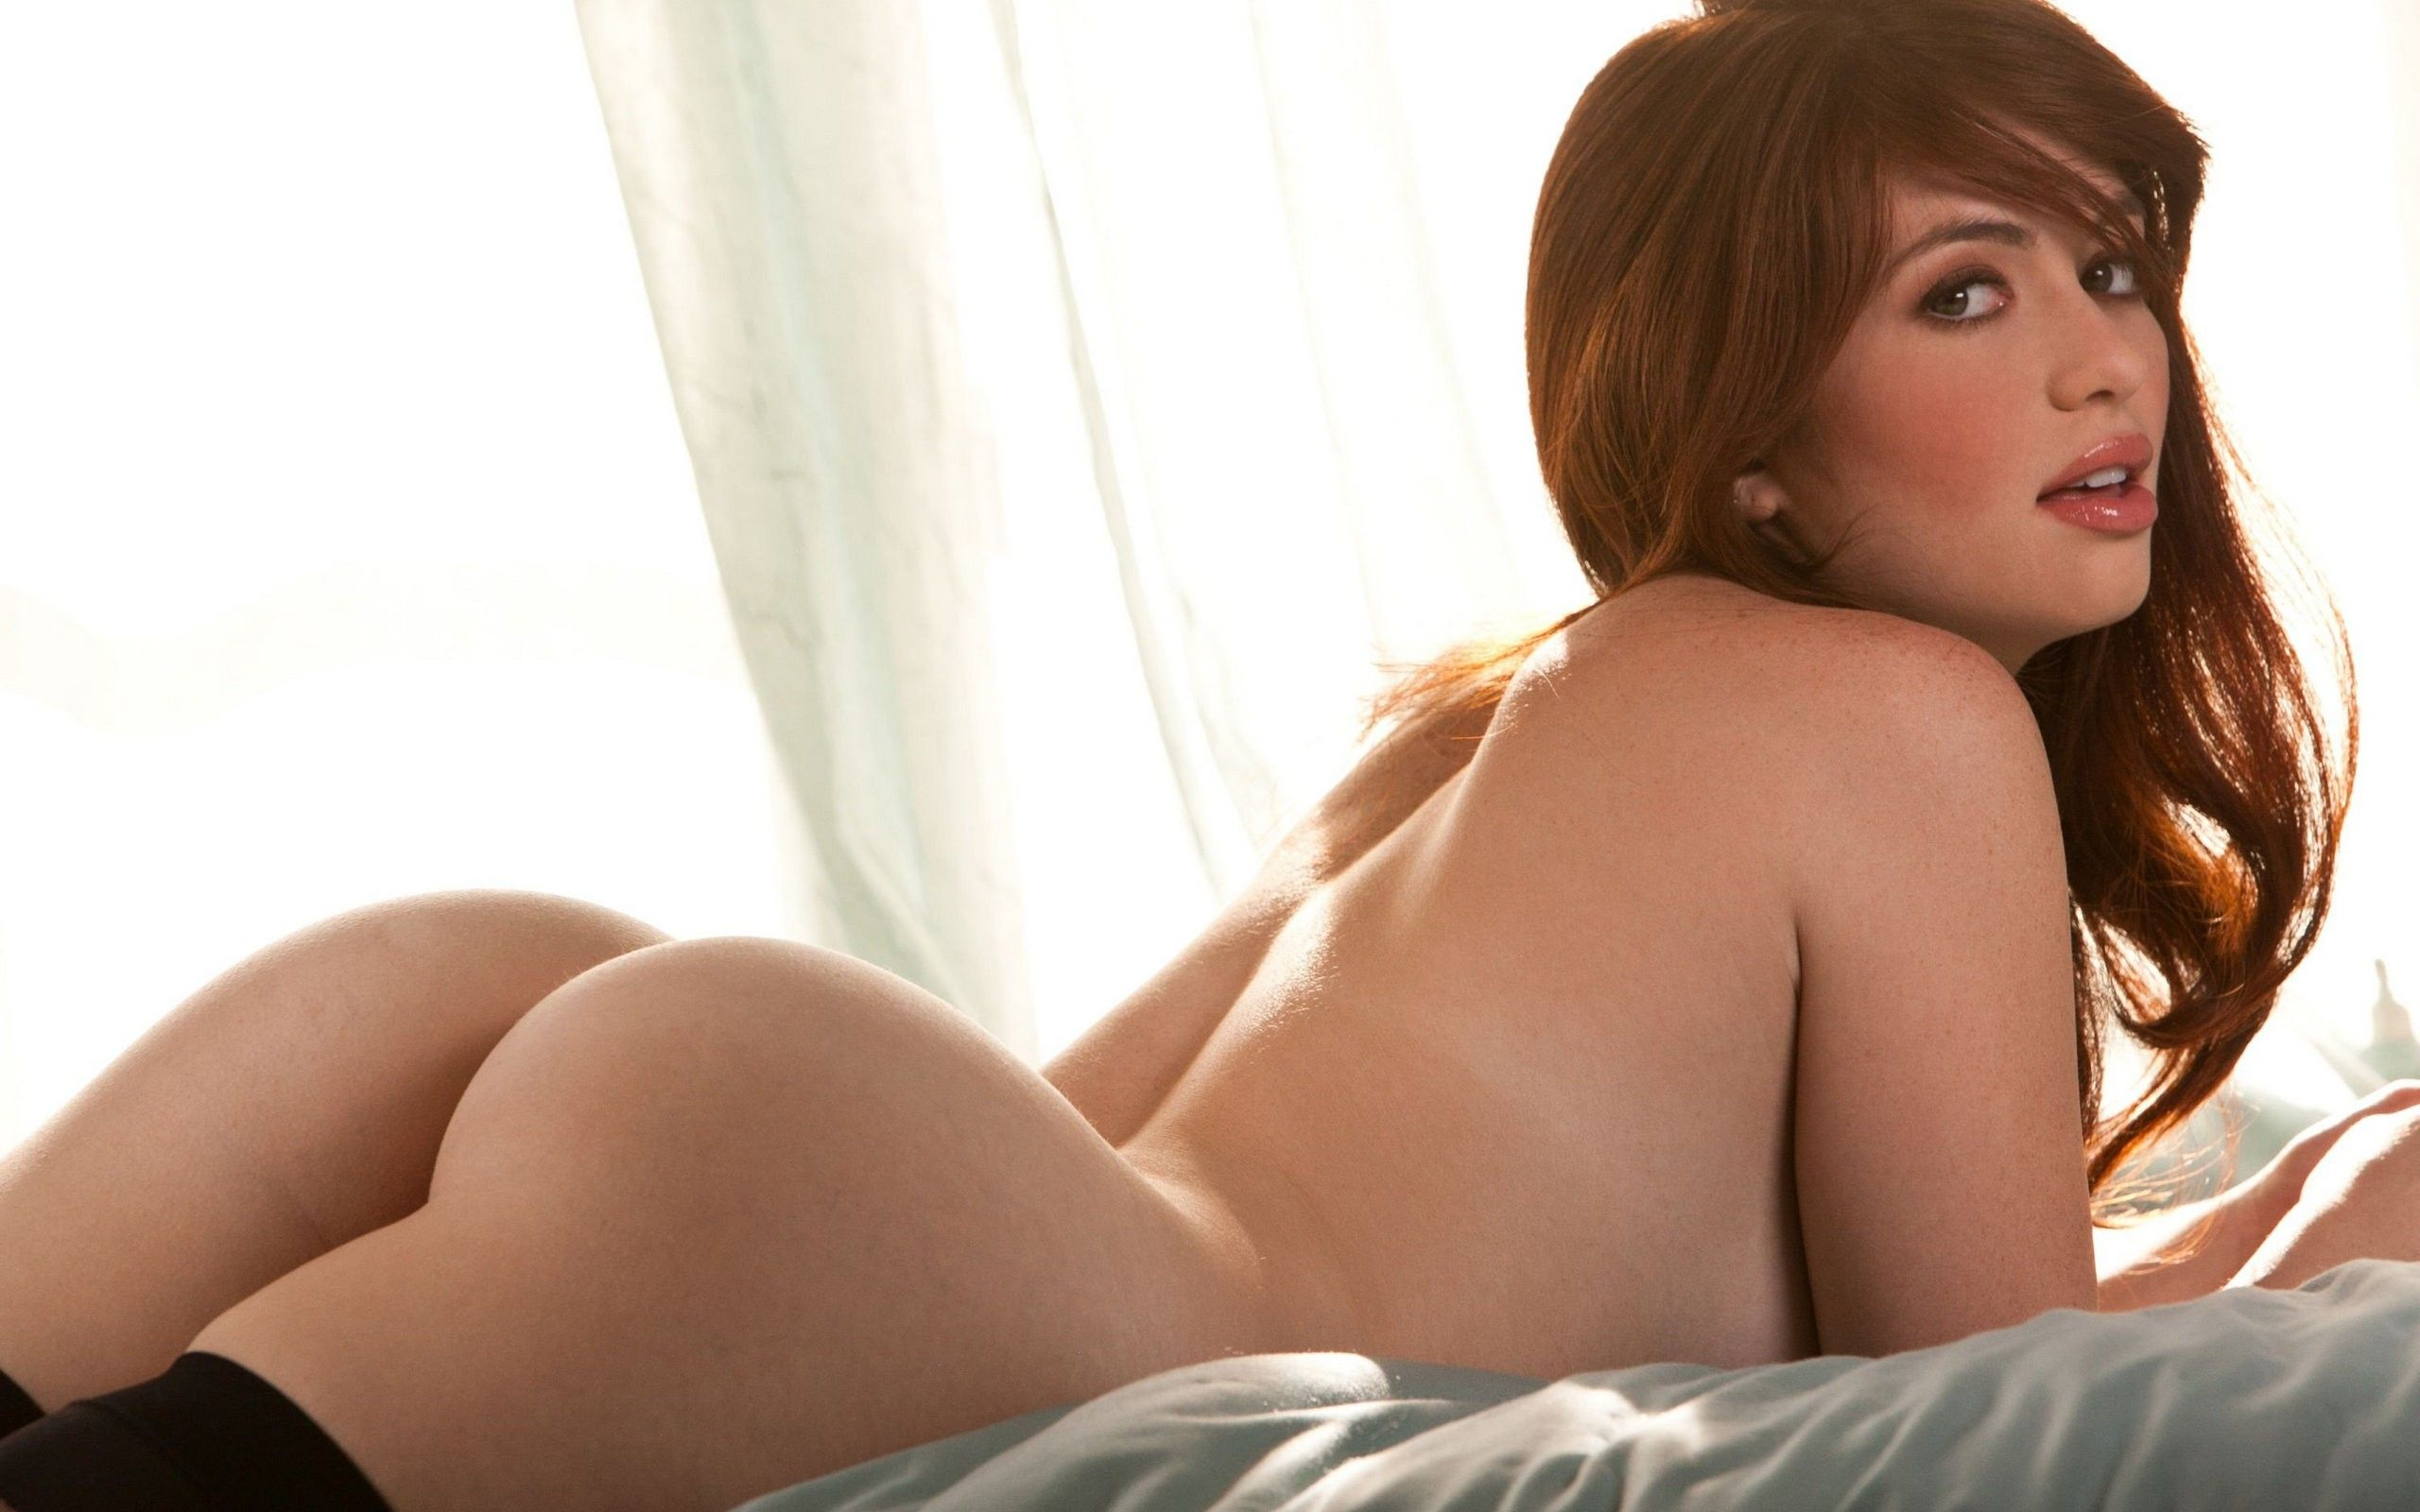 hairy red head women ass porn pic